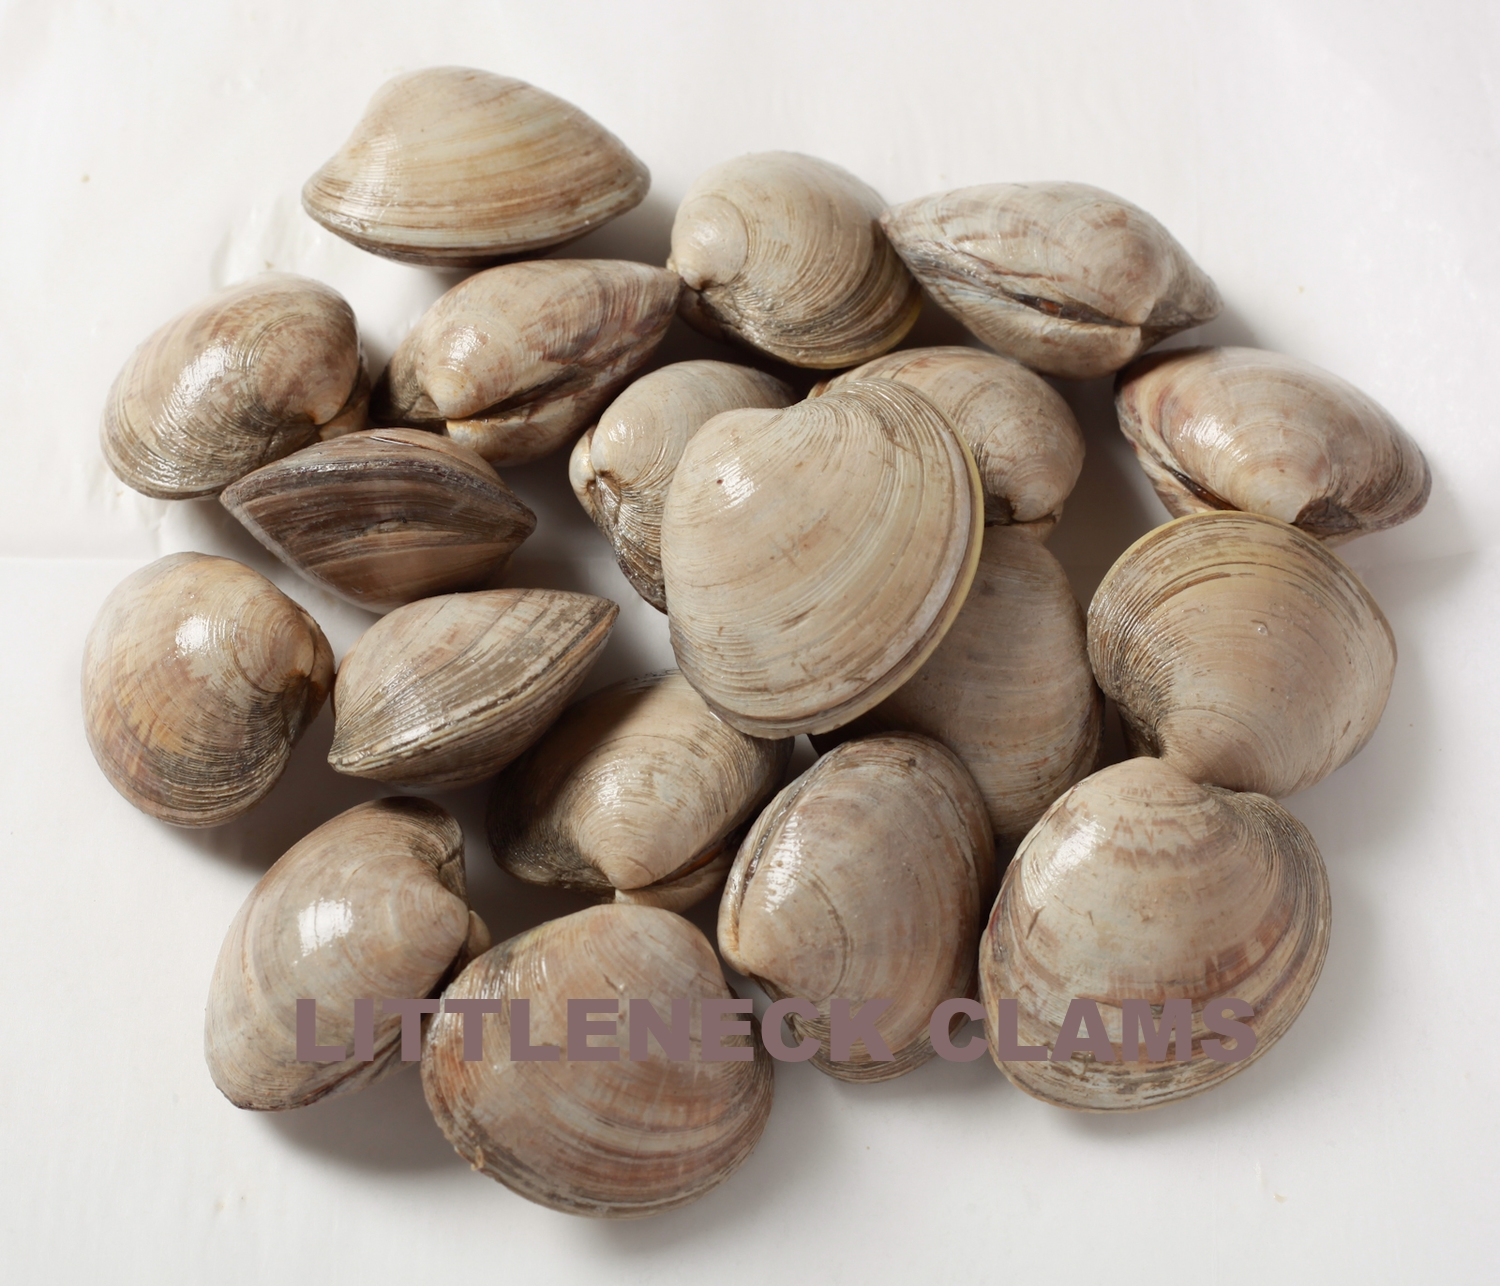 San_Francisco_Fish_Co,LiveLittleNeckClams,10-20ct,1lb (3 of 3).jpg